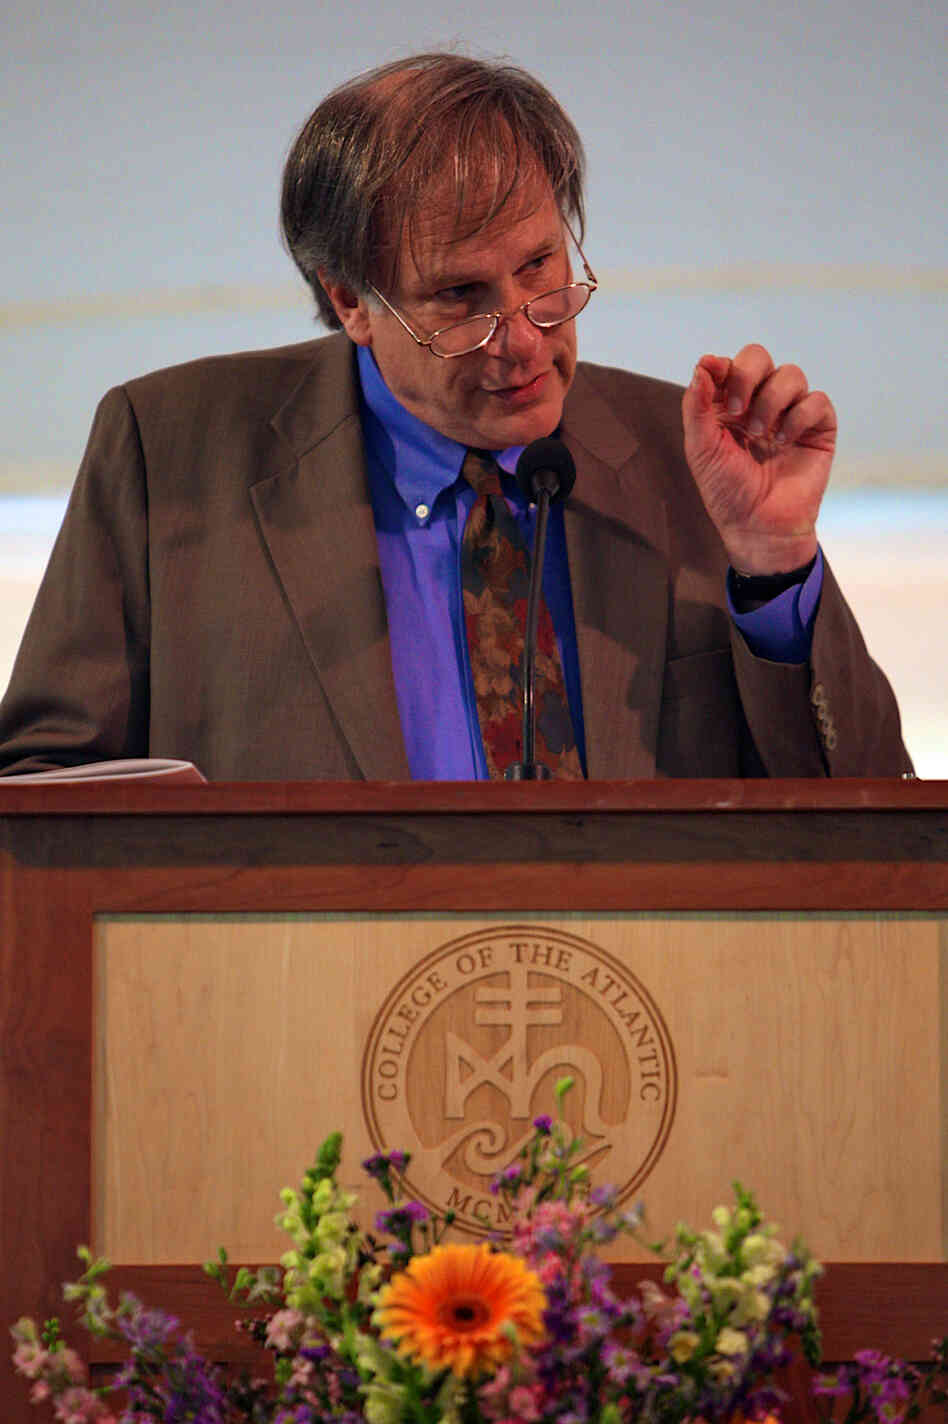 Robert Krulwich delivers the commencement address at College of the Atlantic in Bar Harbor, Maine, on June 2.